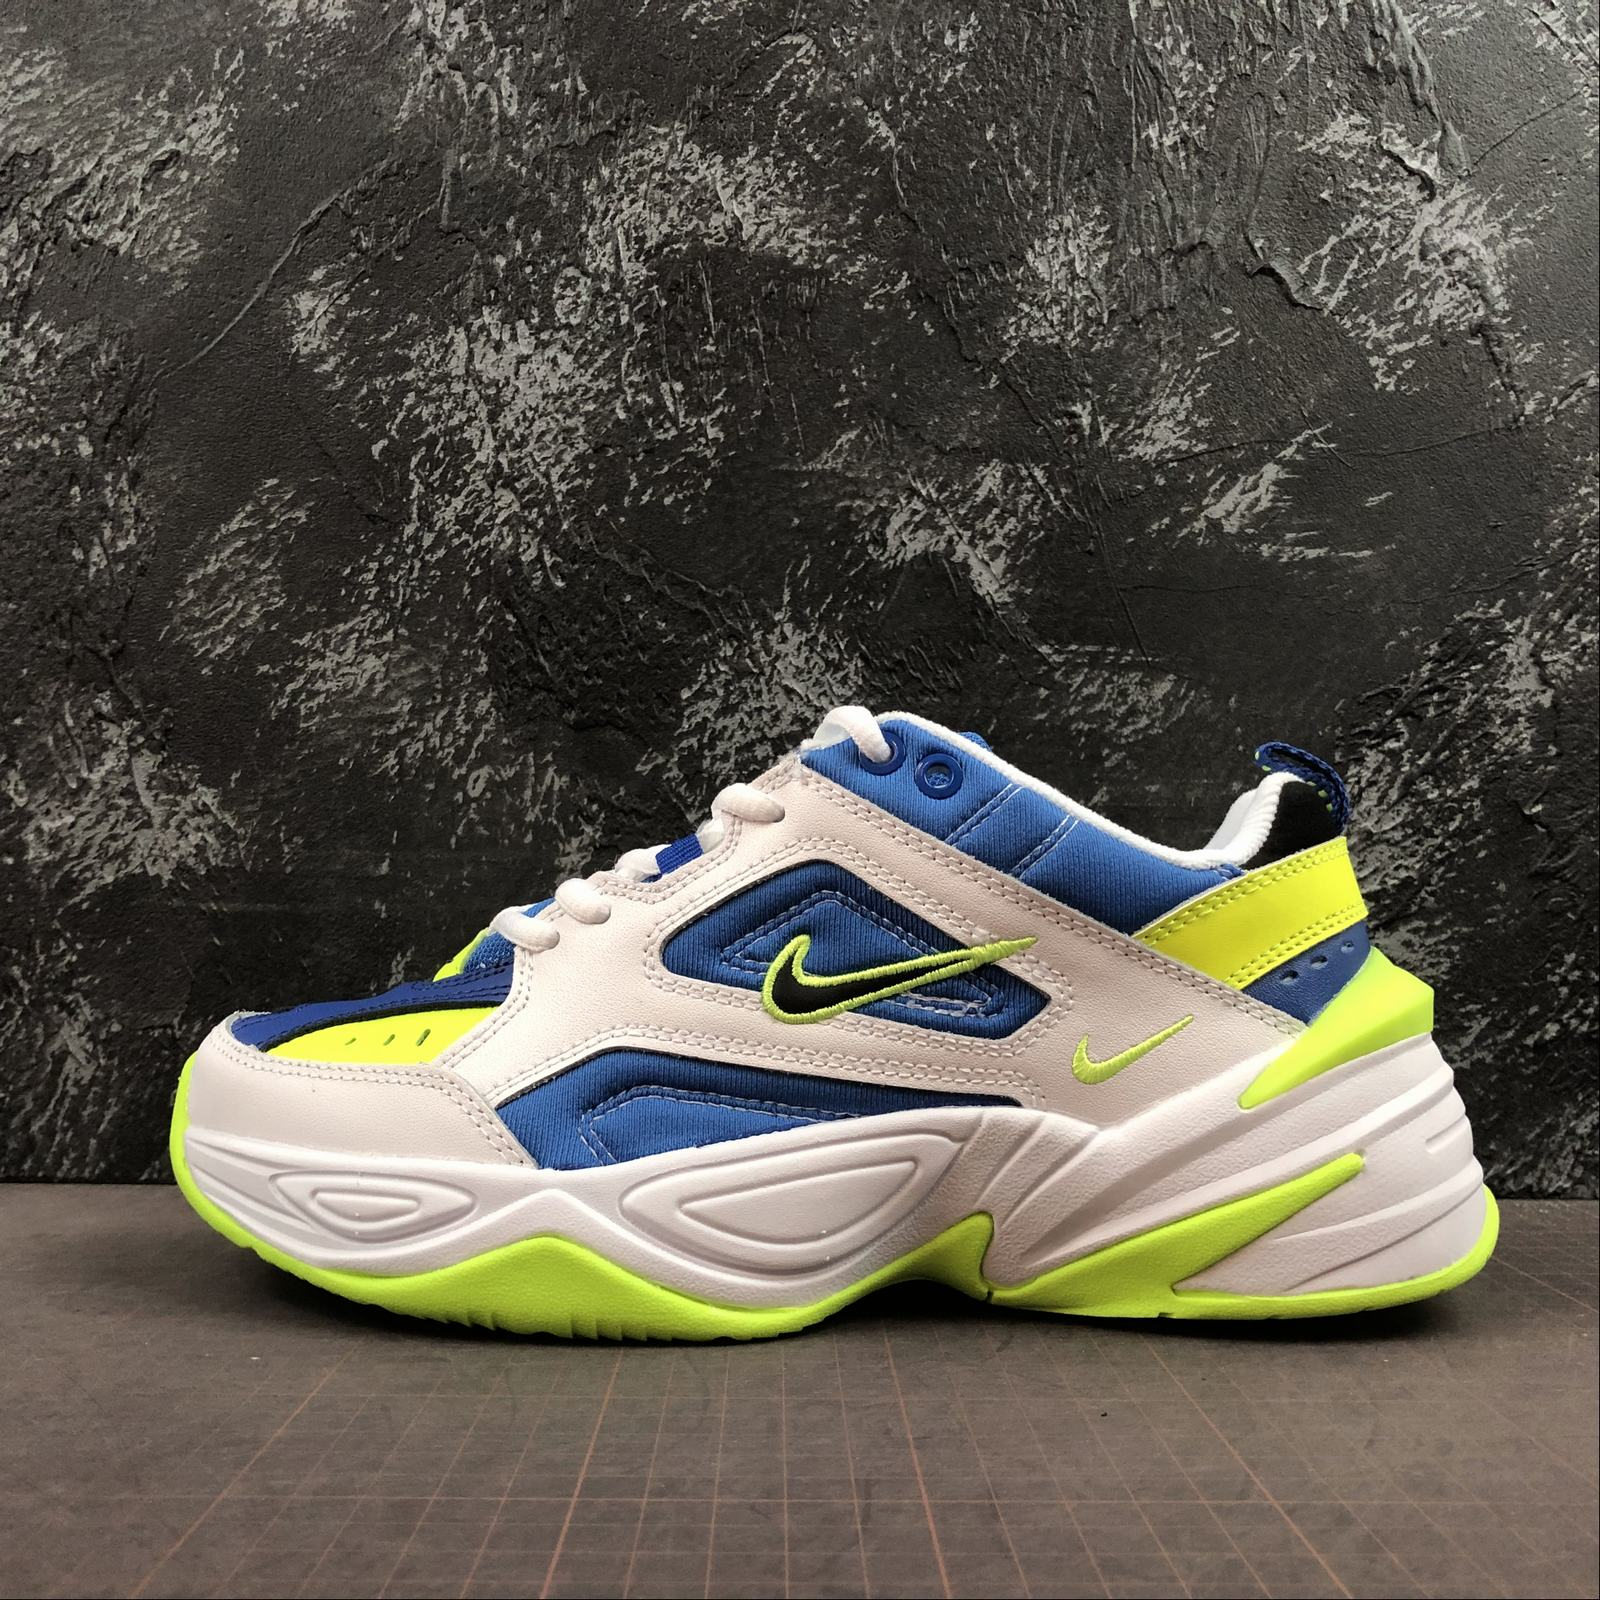 Мужские кроссовки Nike M2K Tekno Men White,Blue,Yellow